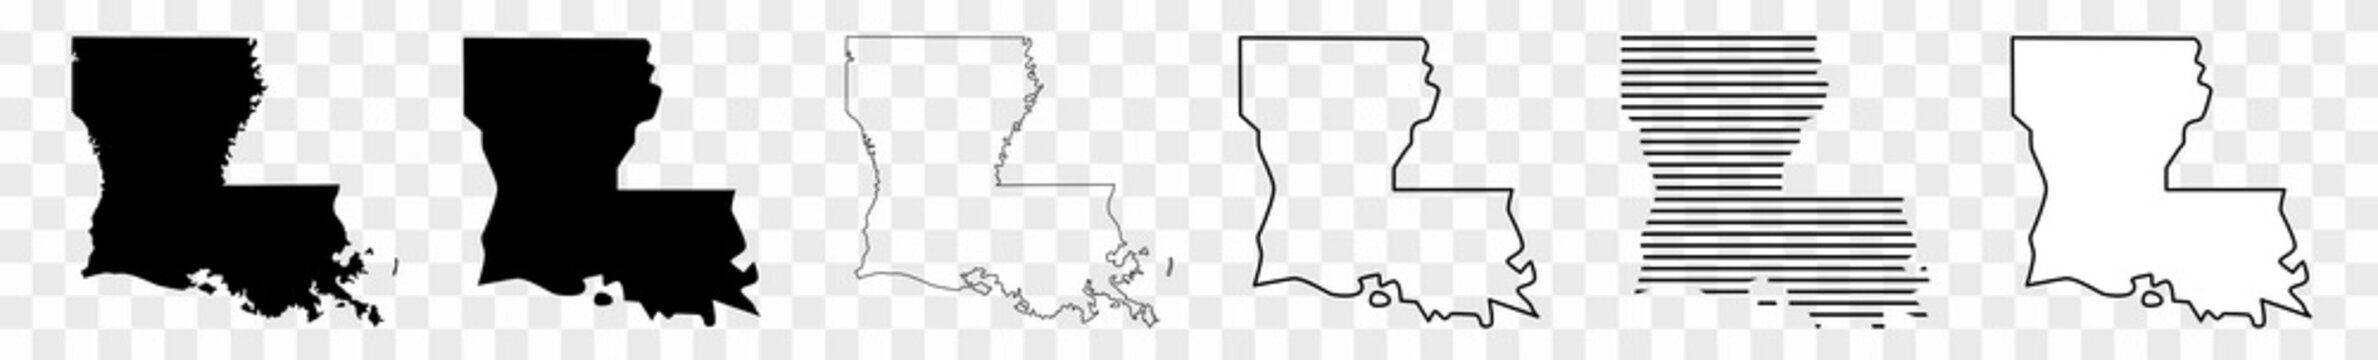 Louisiana Map Black | State Border | United States | US America | Transparent Isolated | Variations